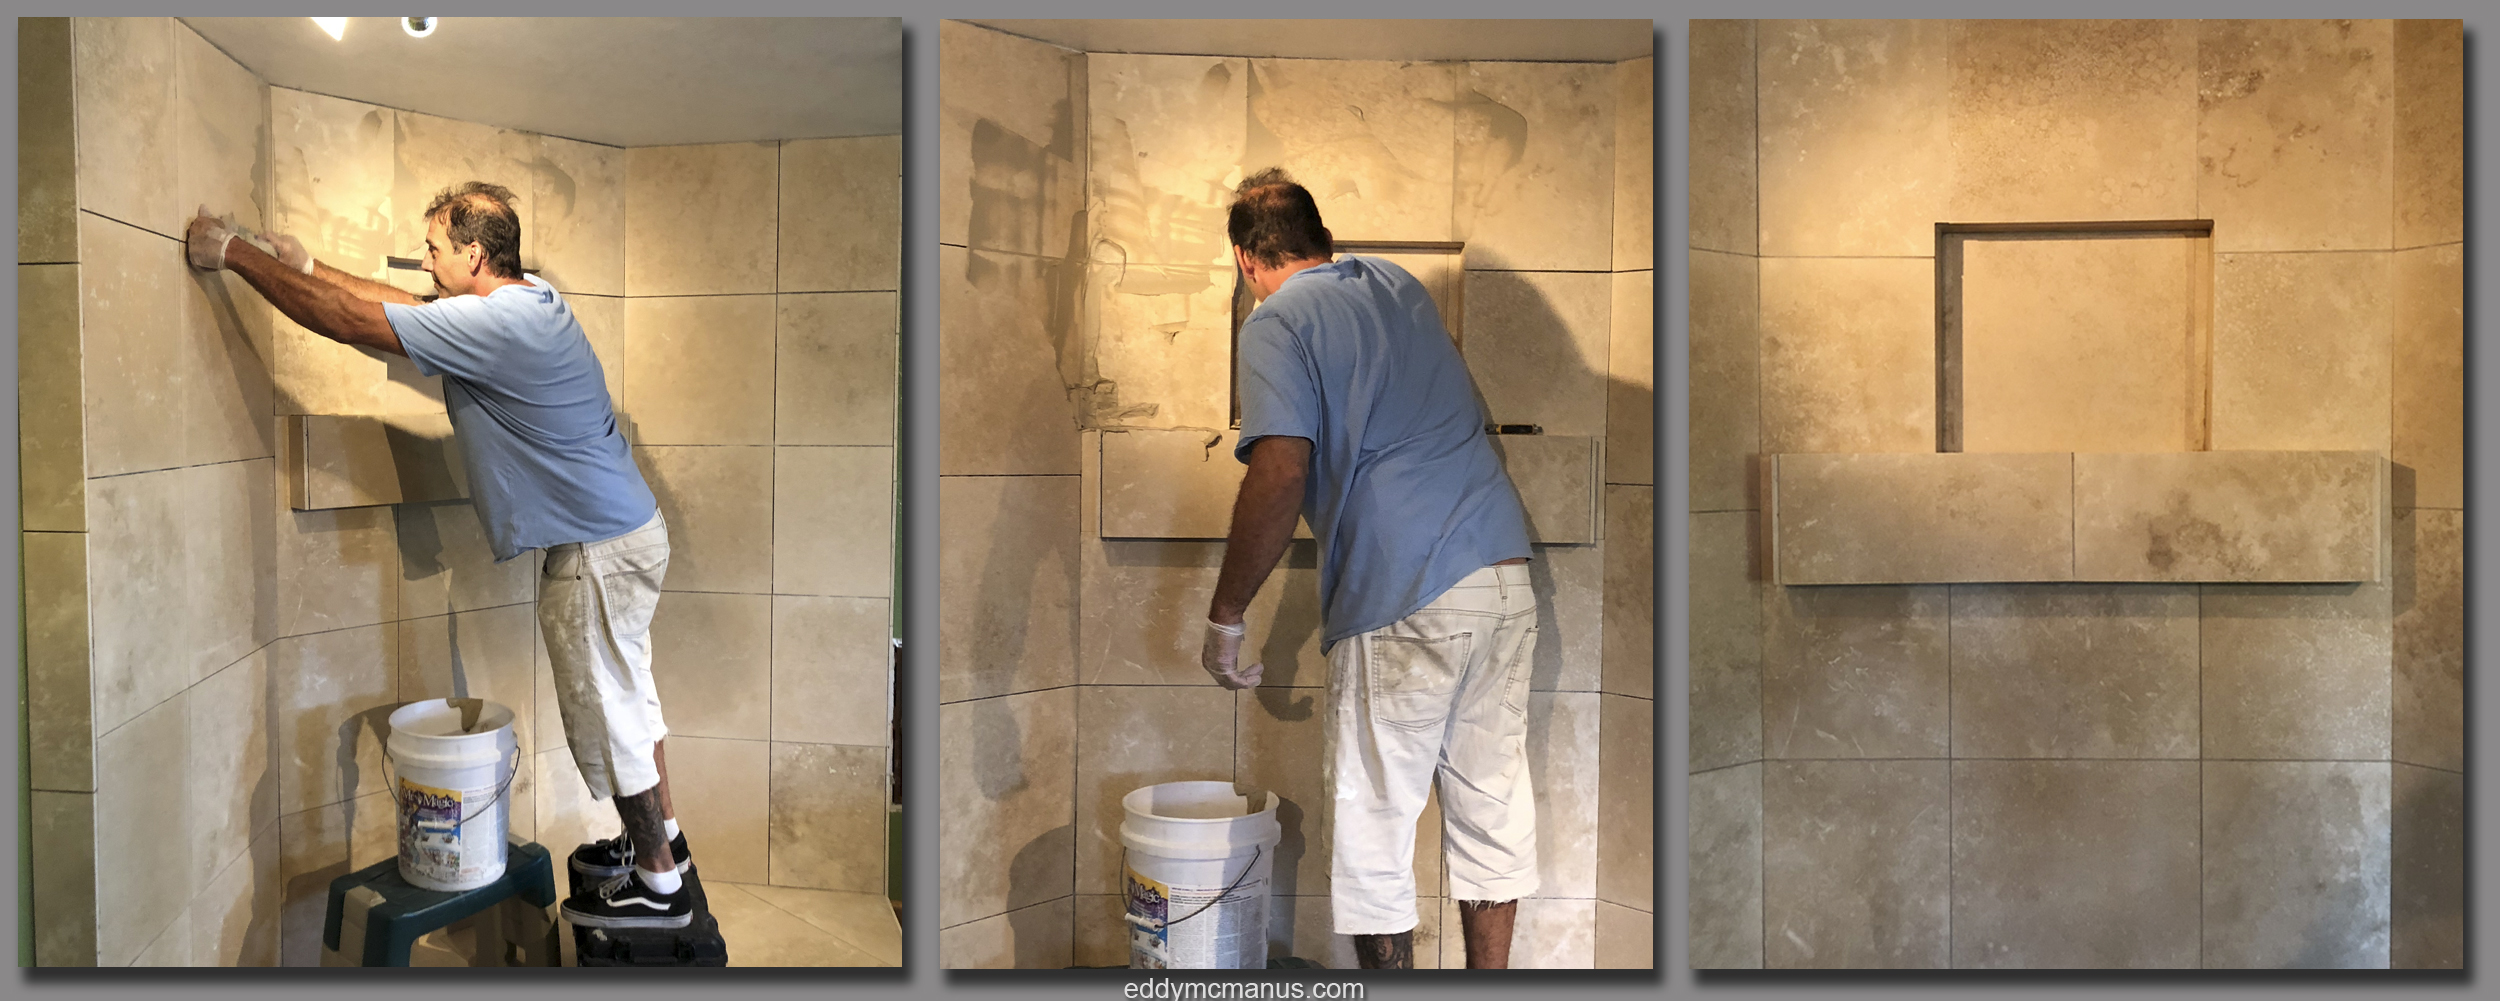 During - Finishing of Travertine Tile Remodeling Project with Mud Grout